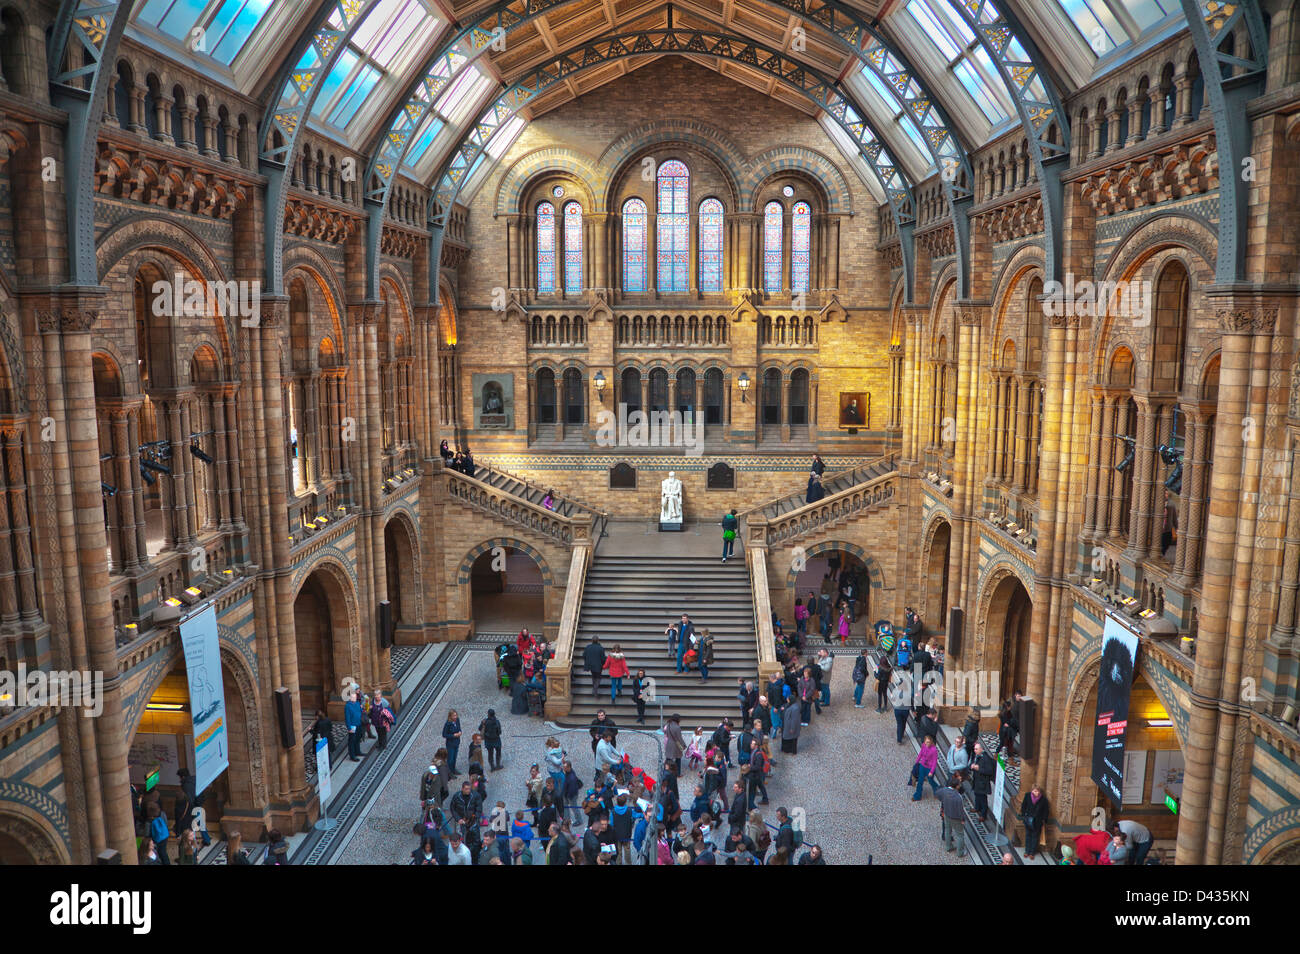 Main hall in the Natural History Museum, South Kensington, London, United Kingdom - Stock Image